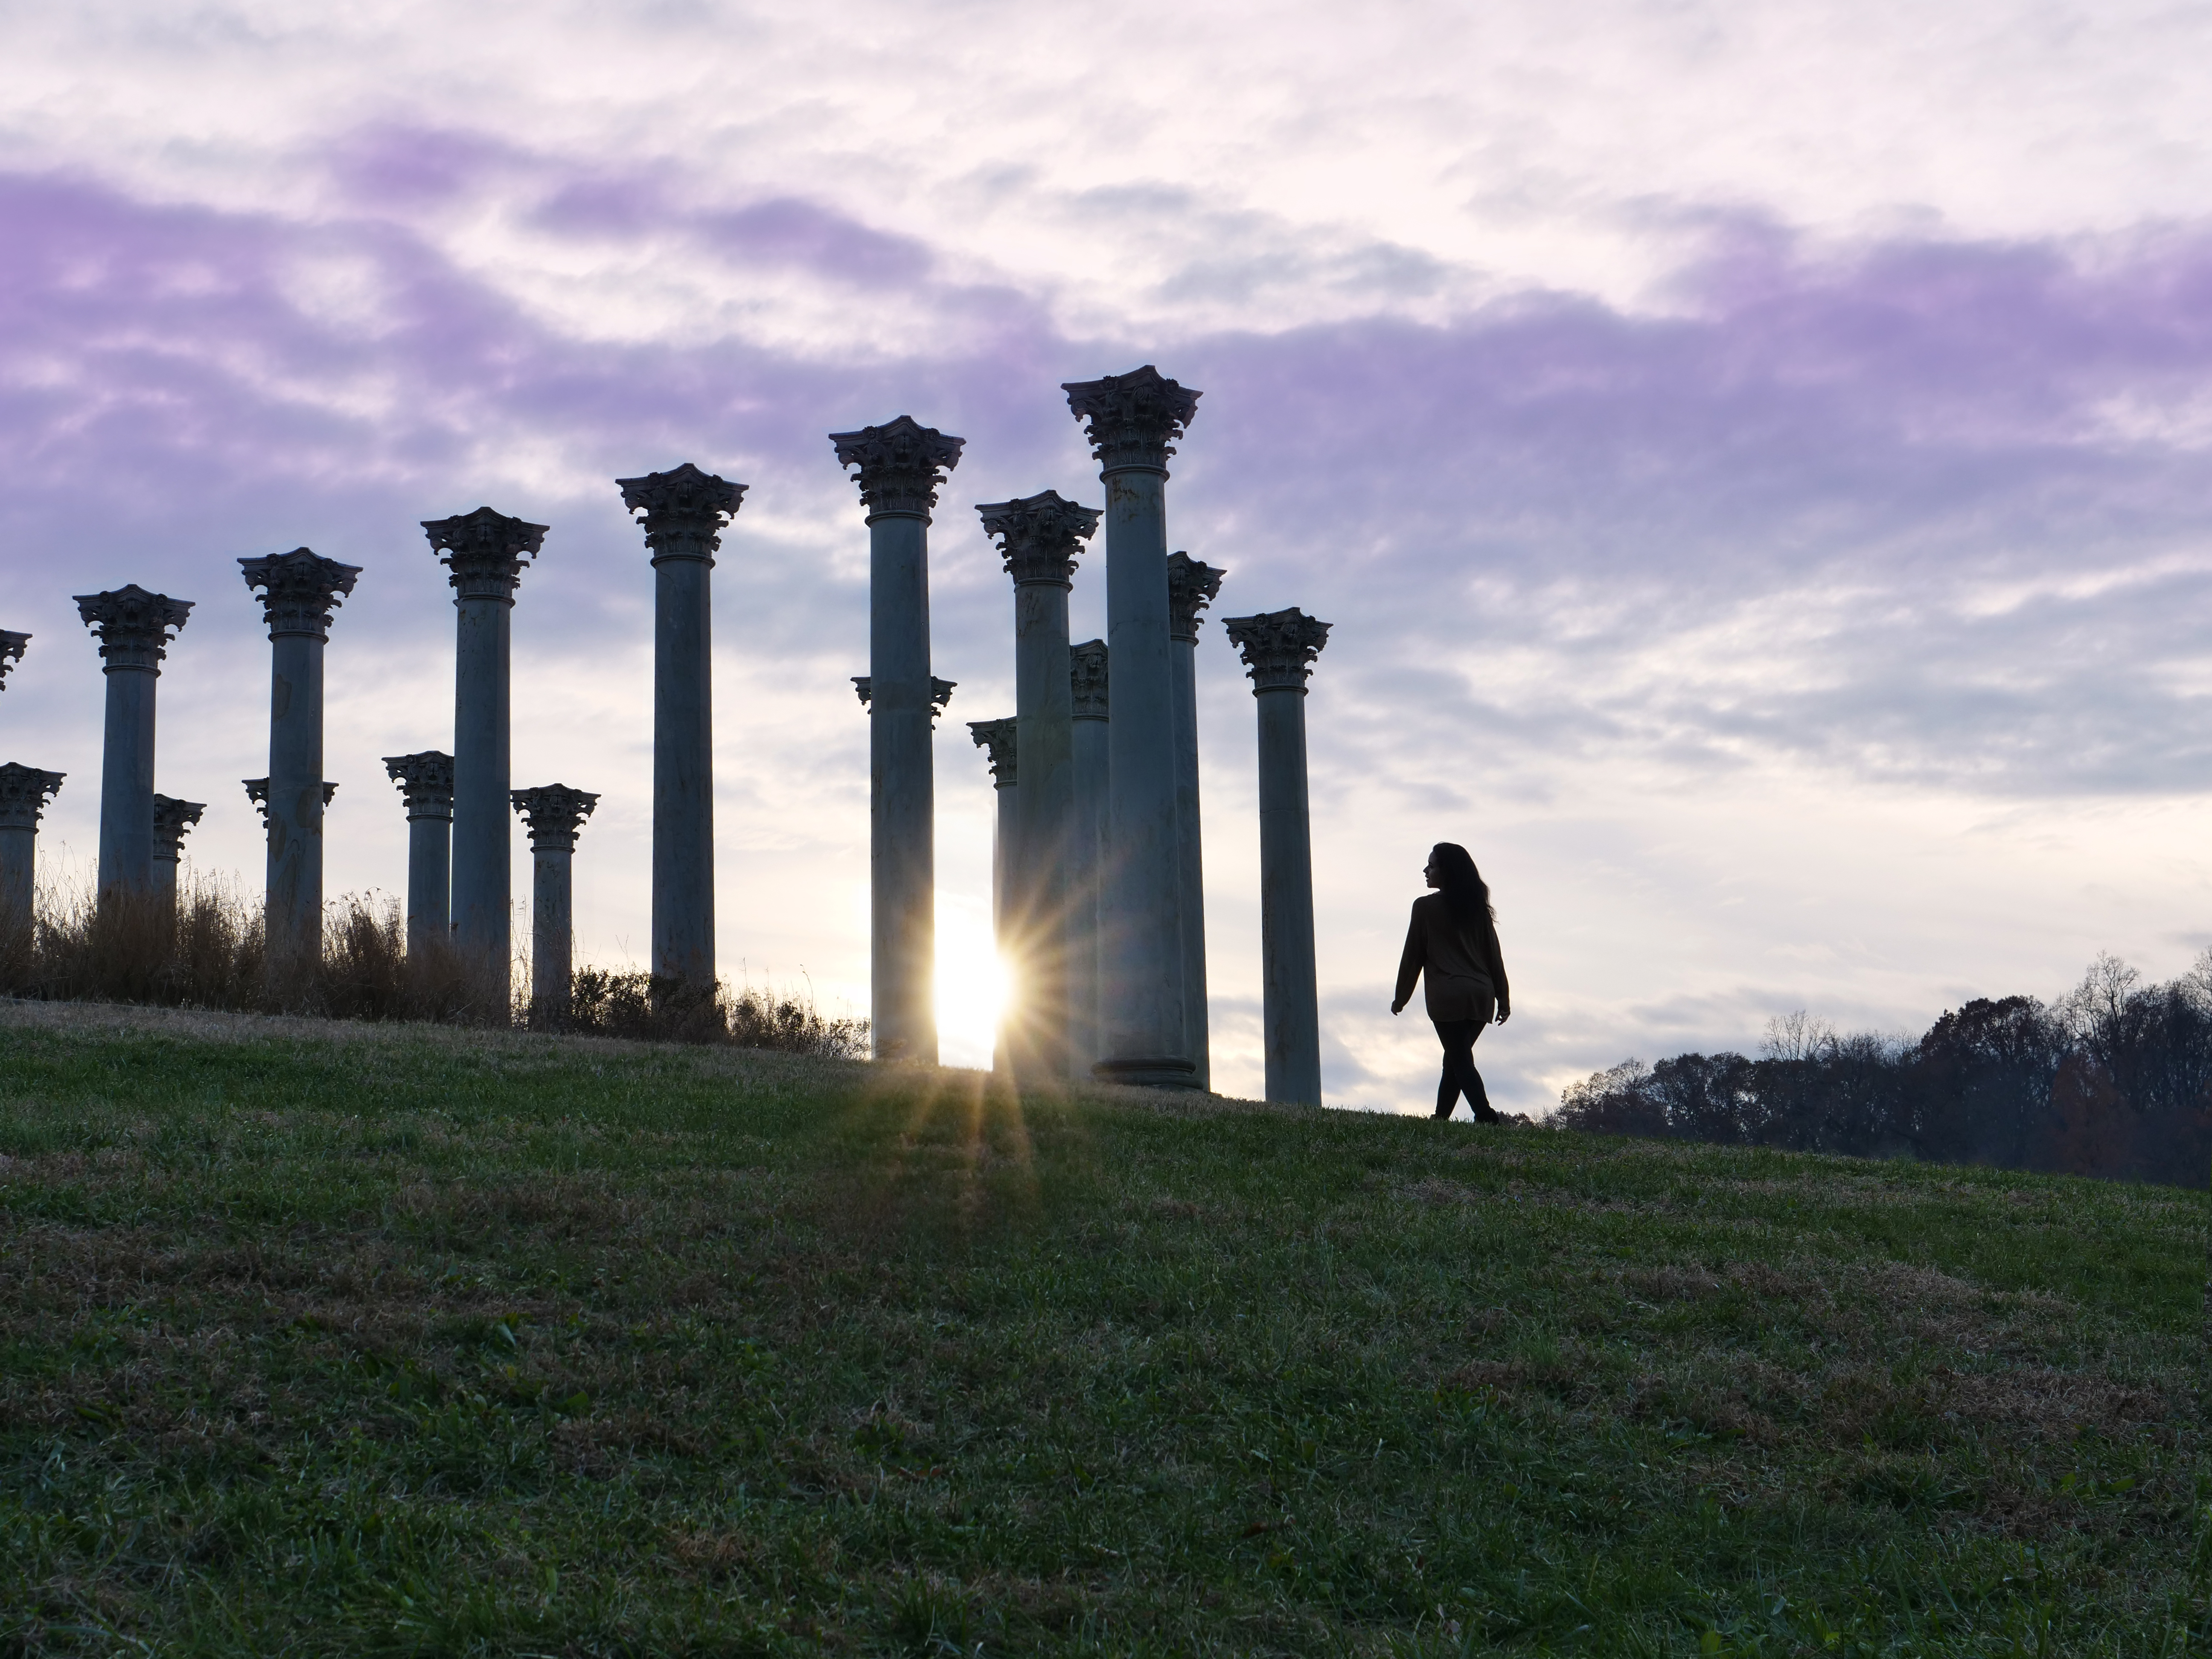 5. The Capitol Columns at the National Arboretum The Travel Women